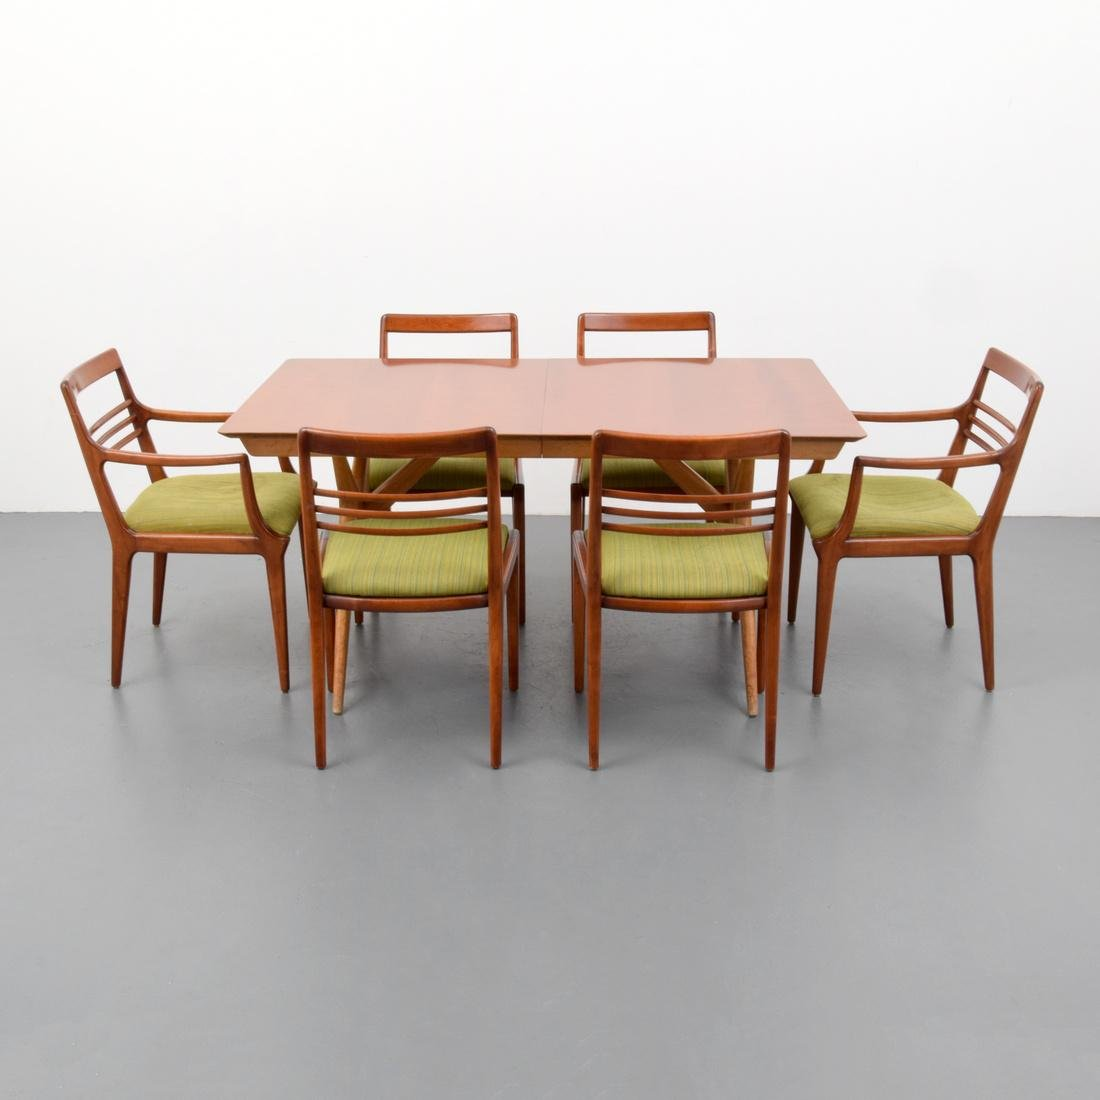 Renzo Rutili Dining Table & 6 Chairs